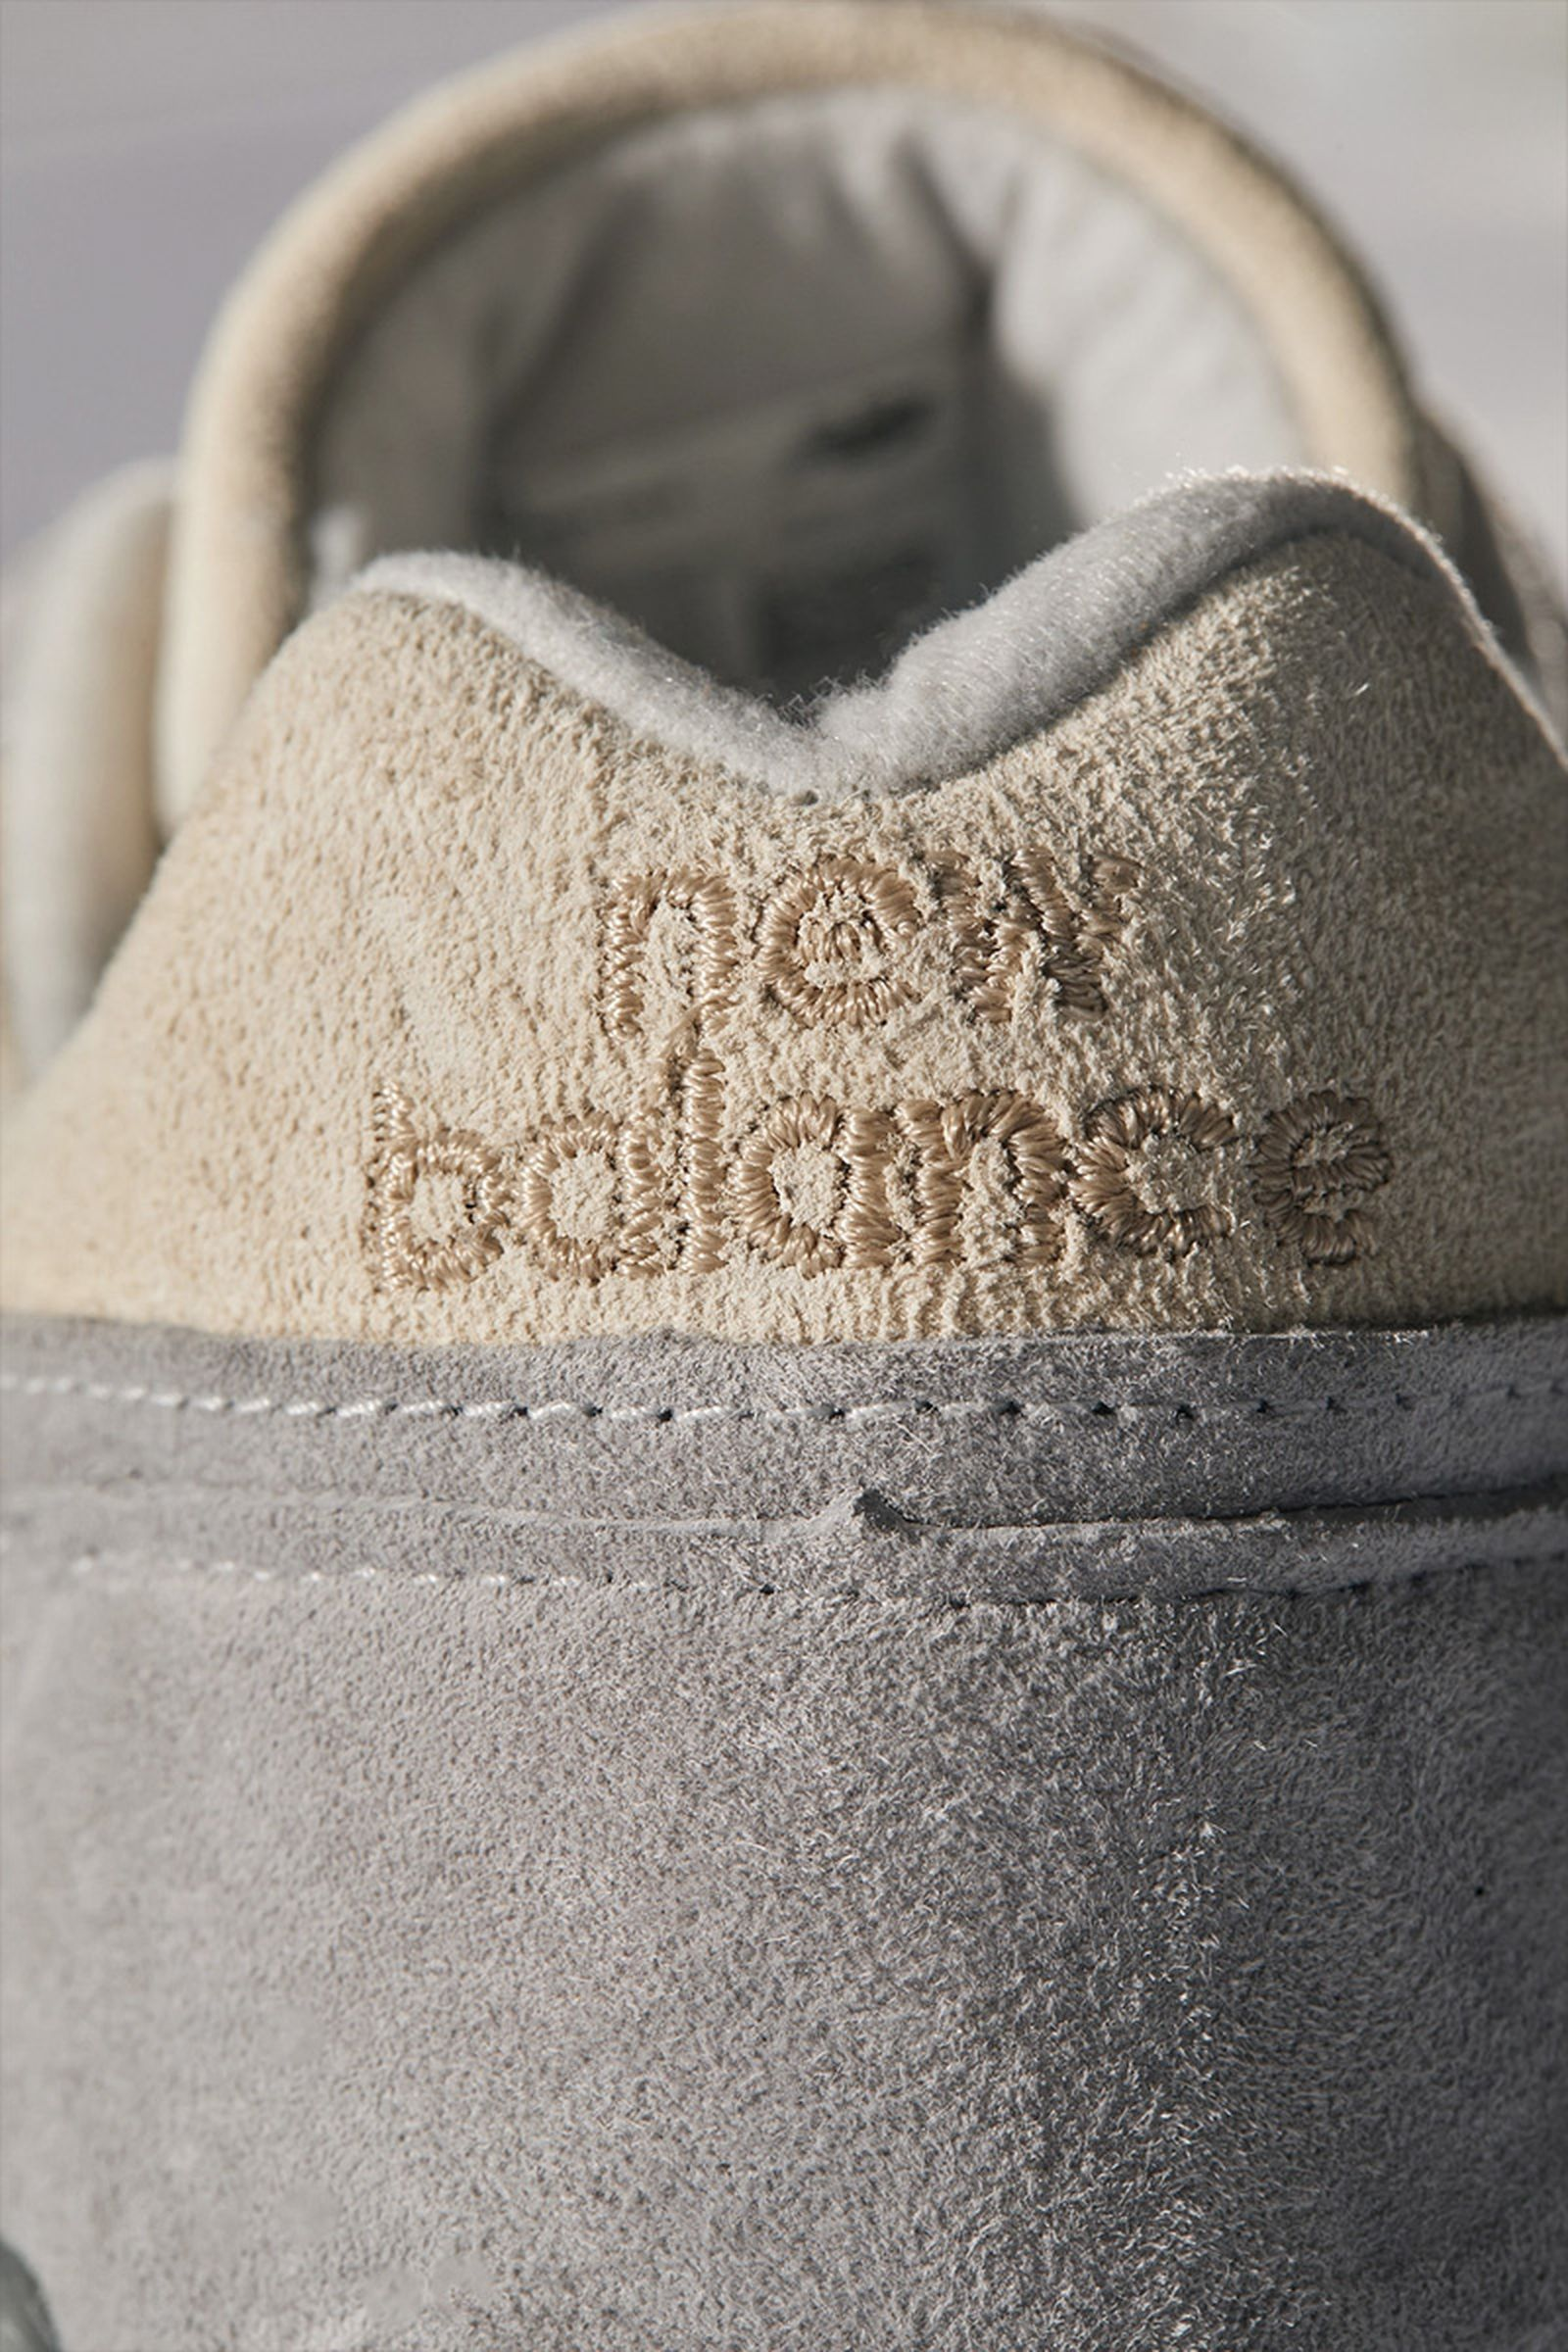 todd-snyder-new-balance-triborough-997-release-date-price-08